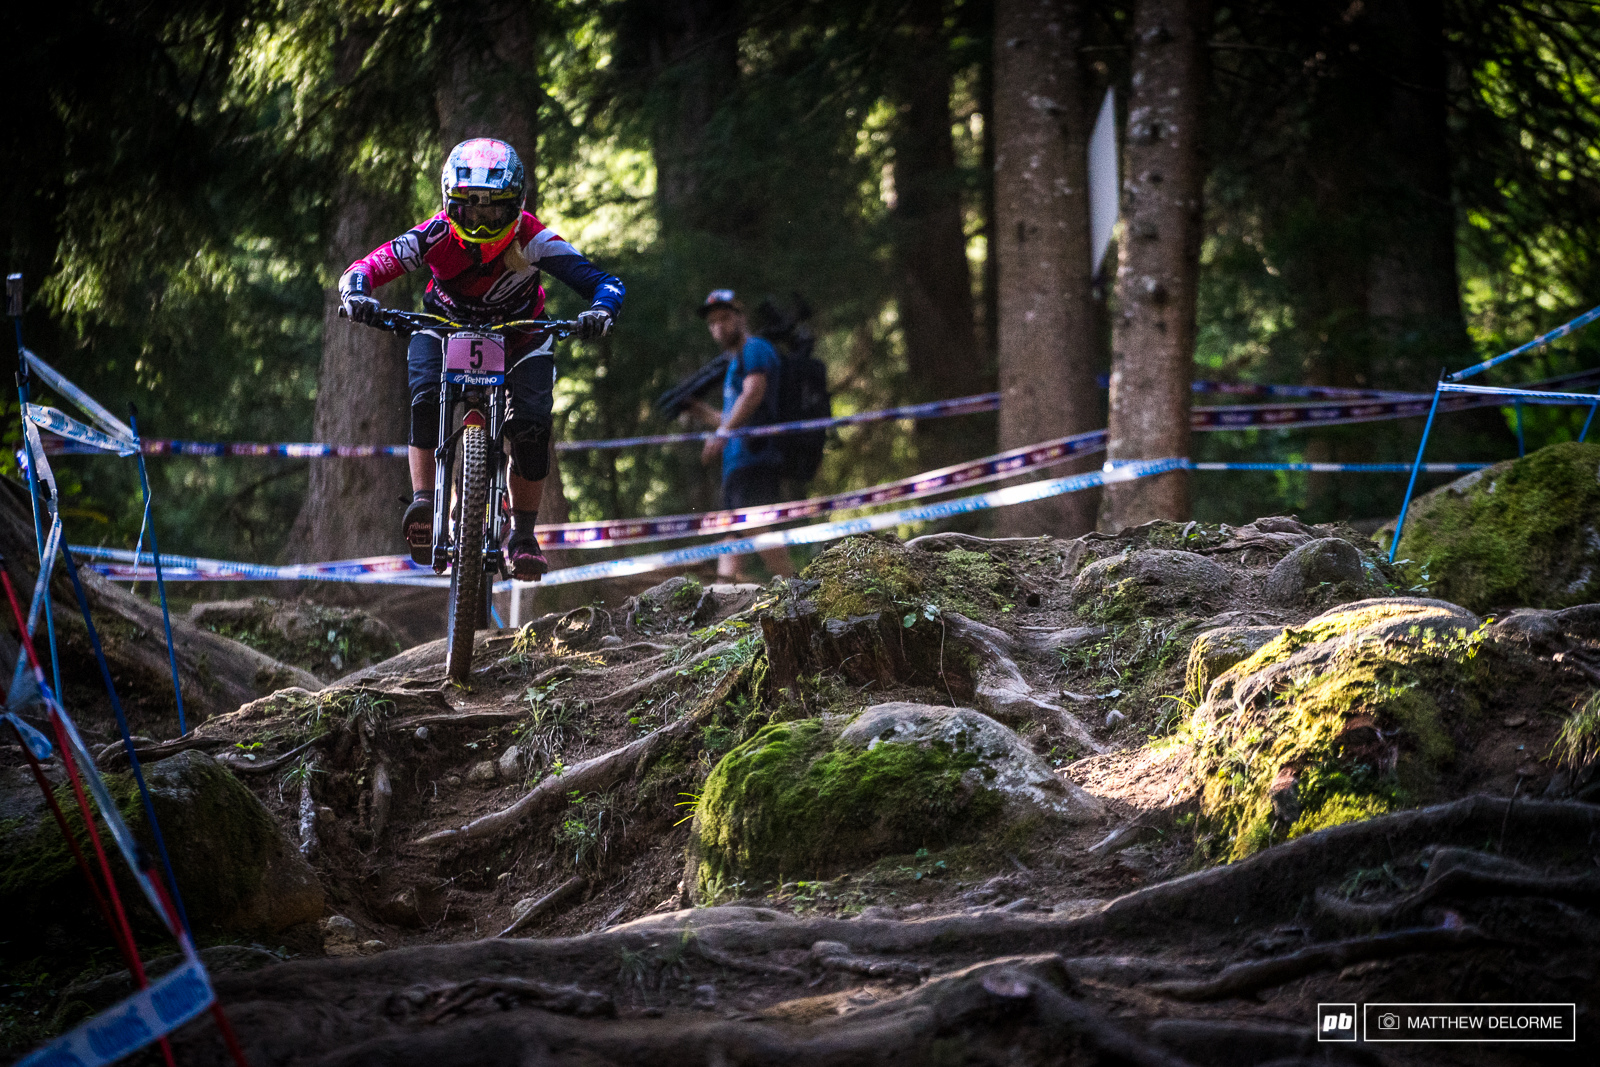 Tracey Hannah rode to fifth place today. Hannah has had a stellar season considering the injury at Lourdes. She finished fourth overall.